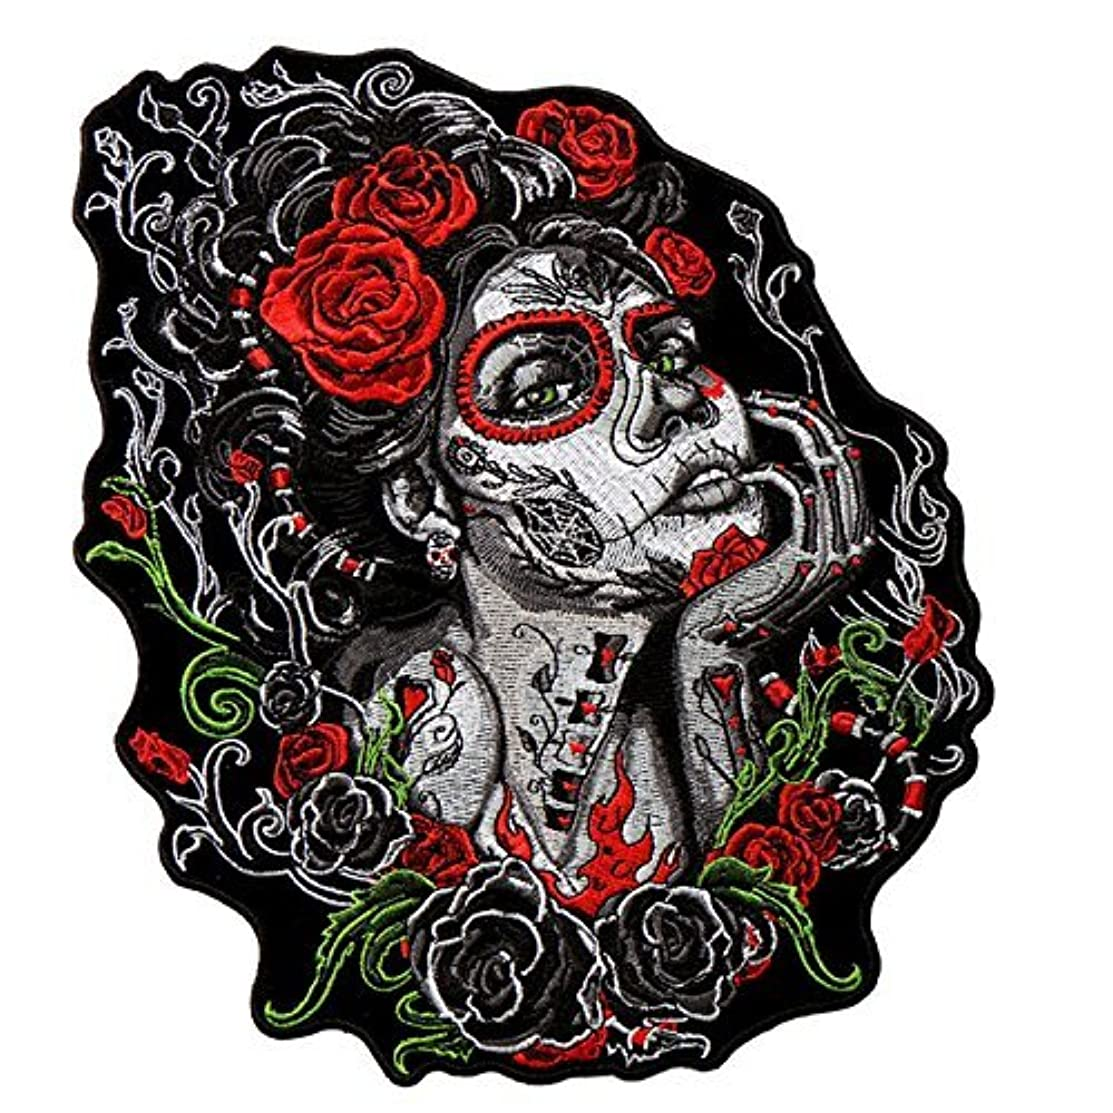 Hot Leathers, SUGAR SKULL WOMAN, Premium Quality Iron-On / Saw-On, Heat Sealed Backing Rayon PATCH - 8